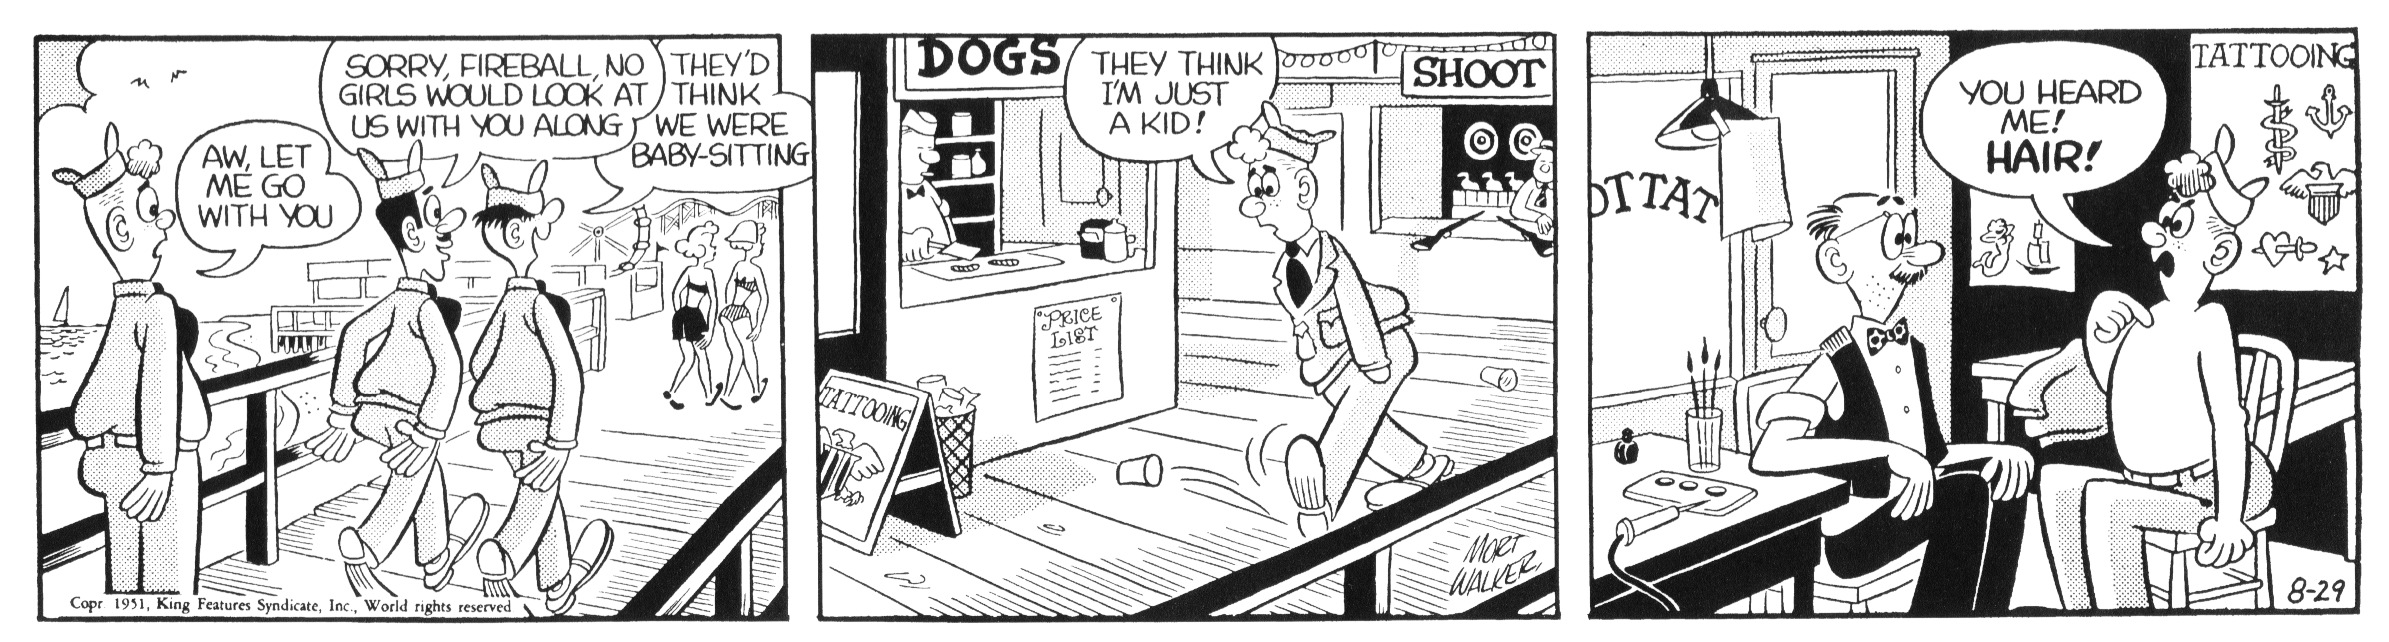 Beetle Bailey daily strip, August 29, 1951.